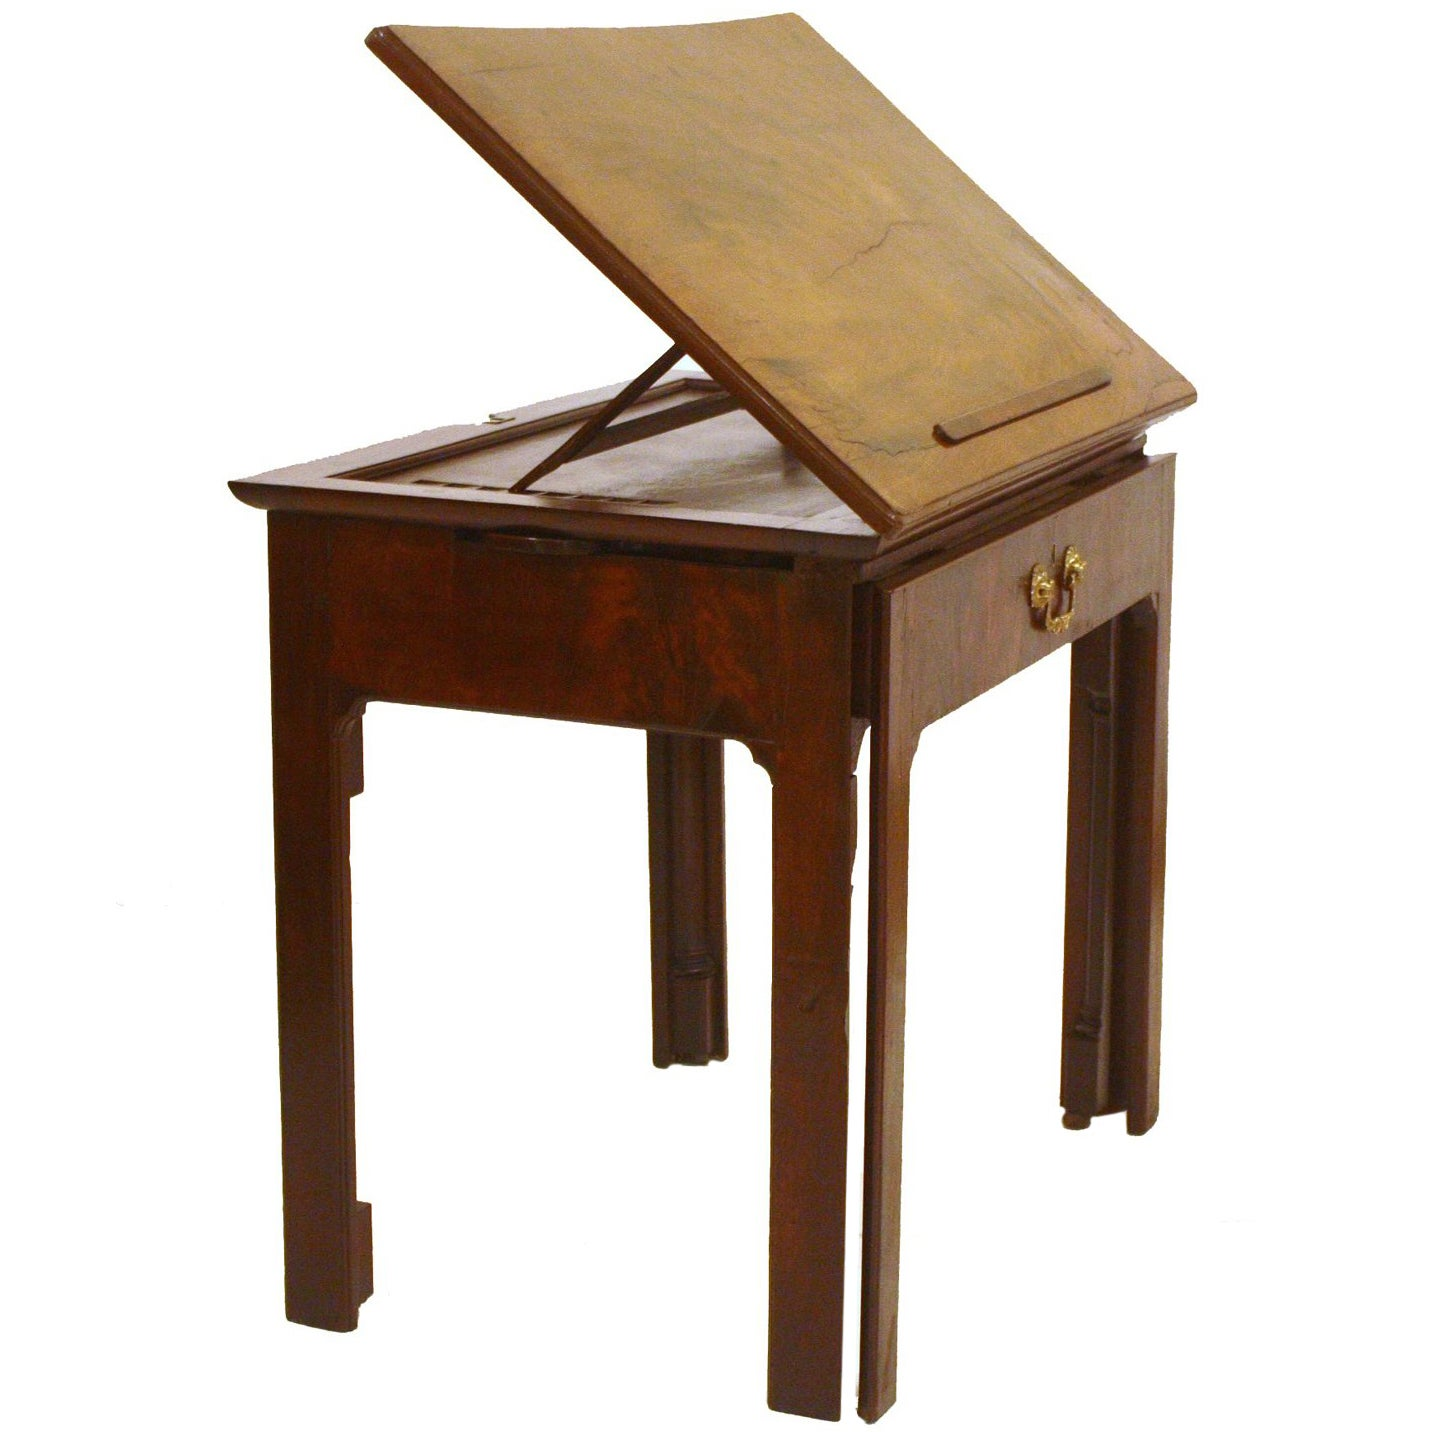 18th Century George III Architect's Desk / Adjustable Drawing Table